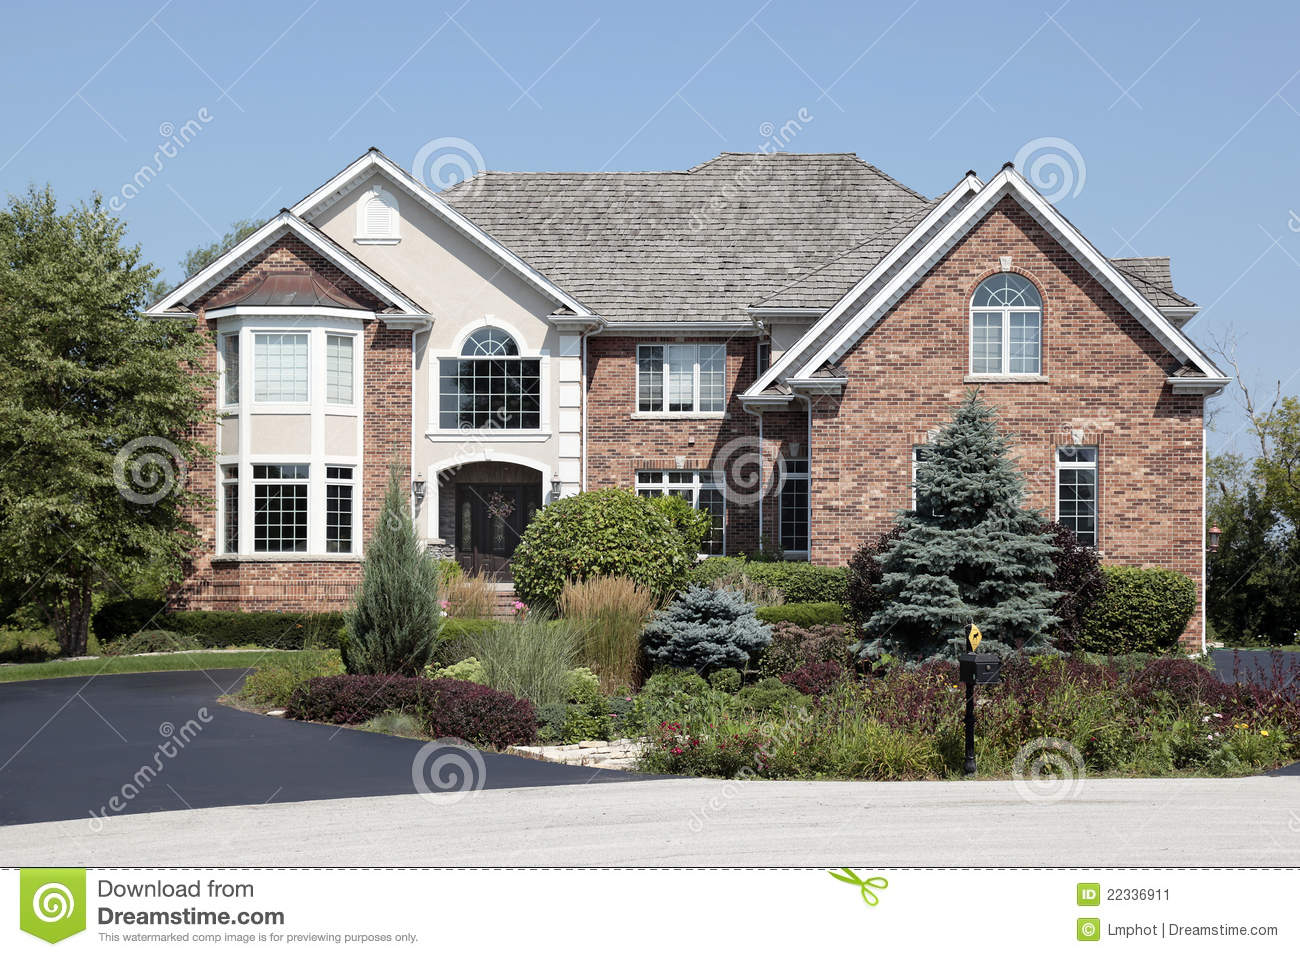 Landscaping Front Of Brick House : Brick home with front landscaping stock image